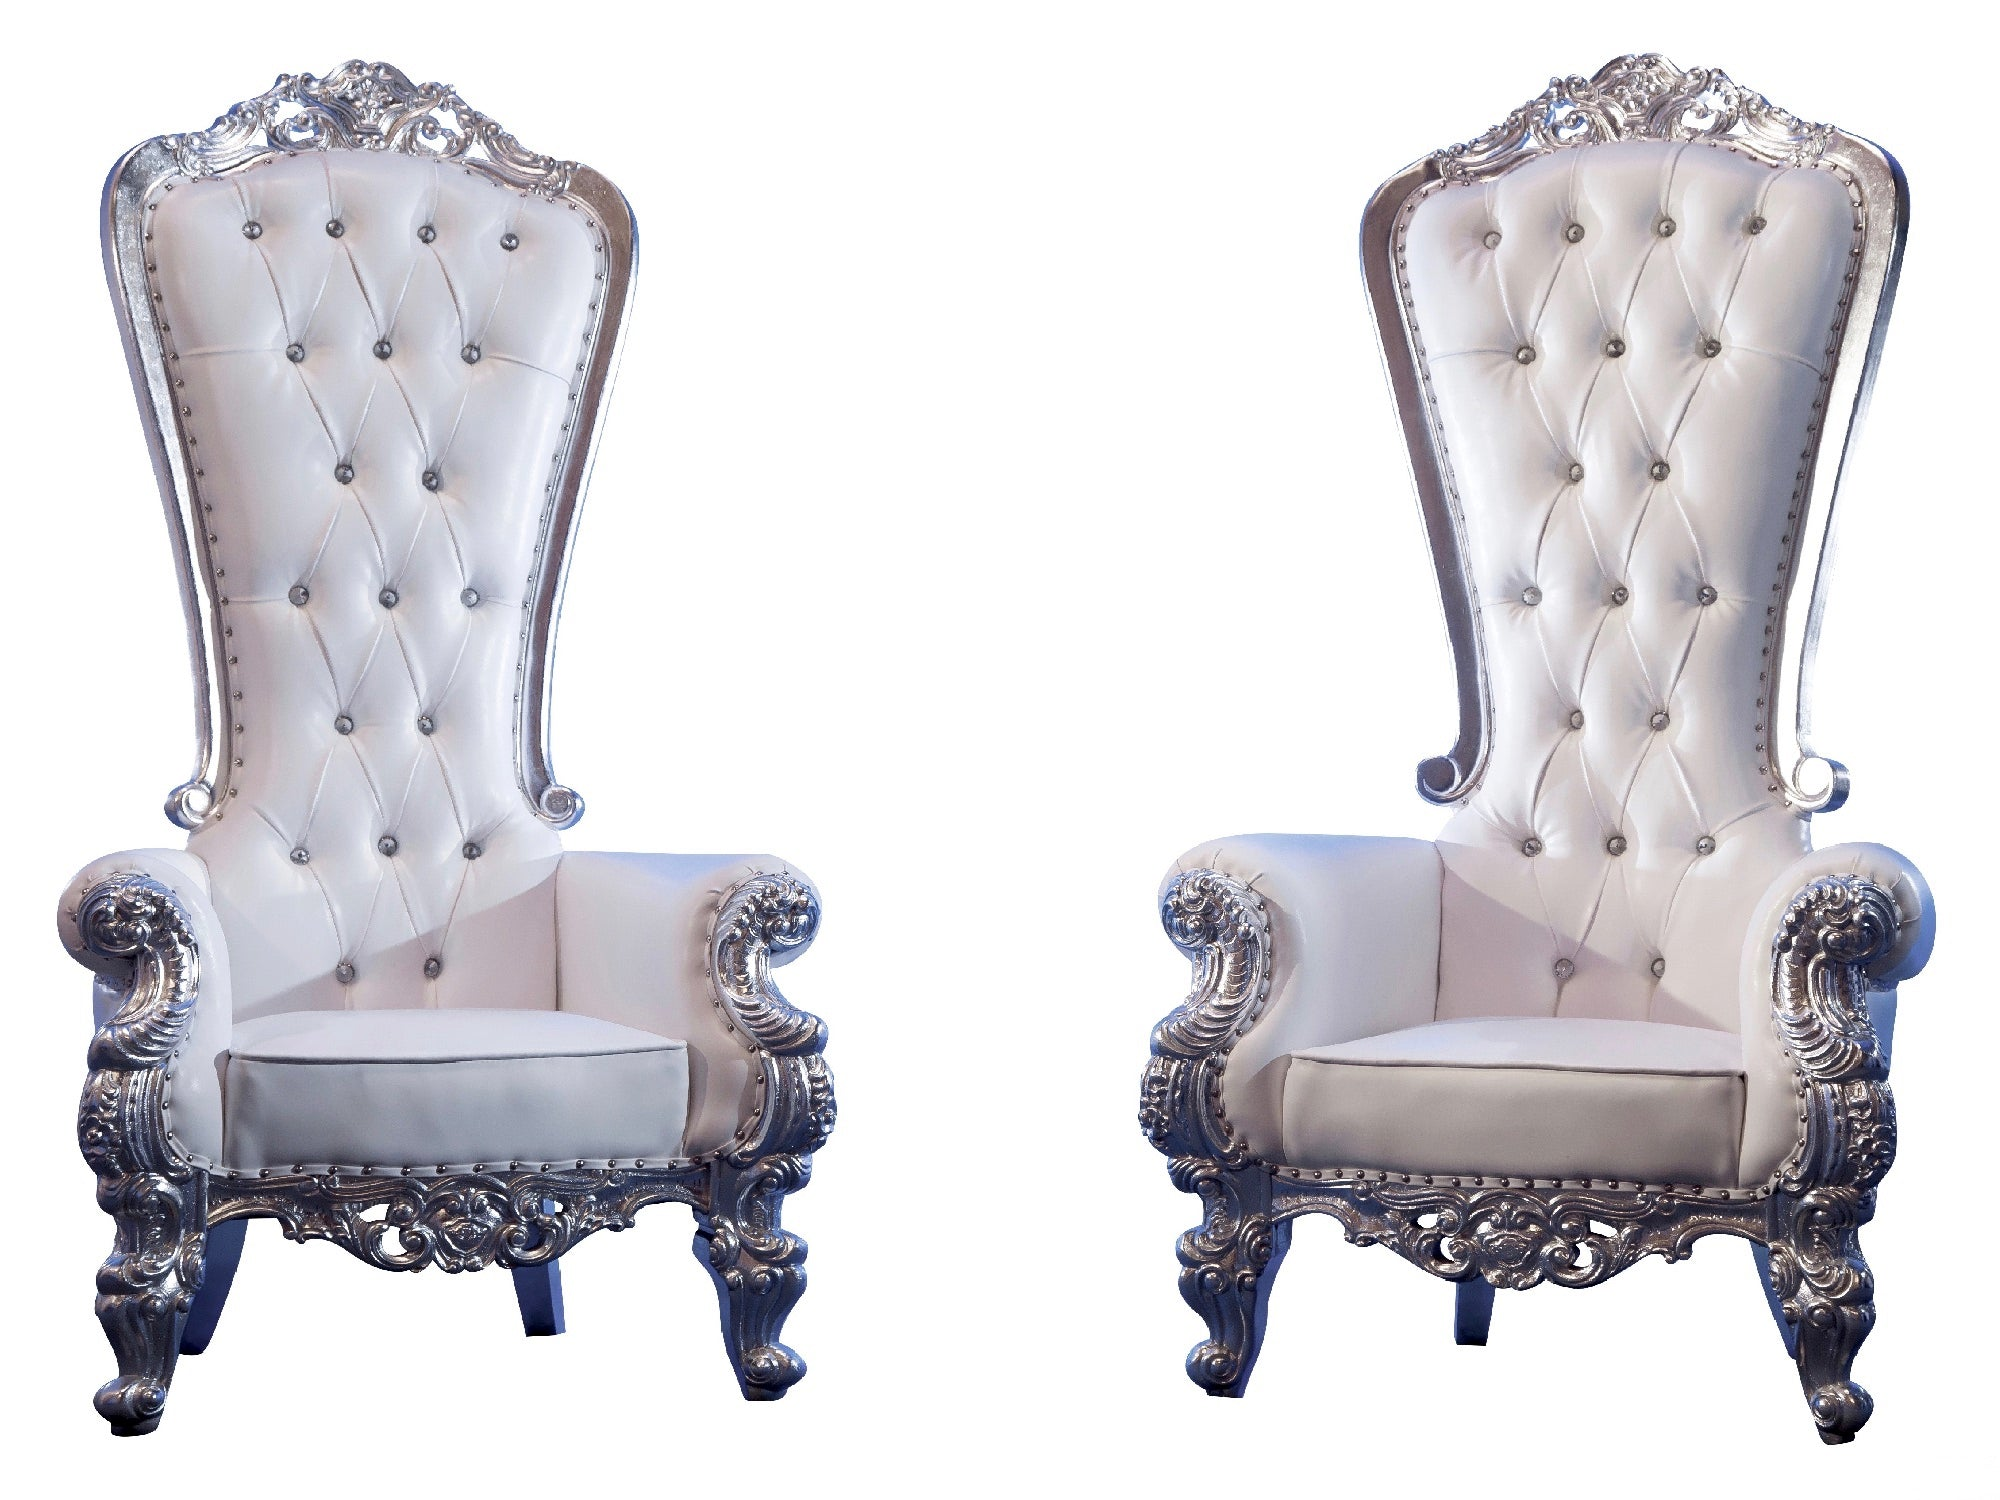 VICTORIA THRONE CHAIR - PLATINUM